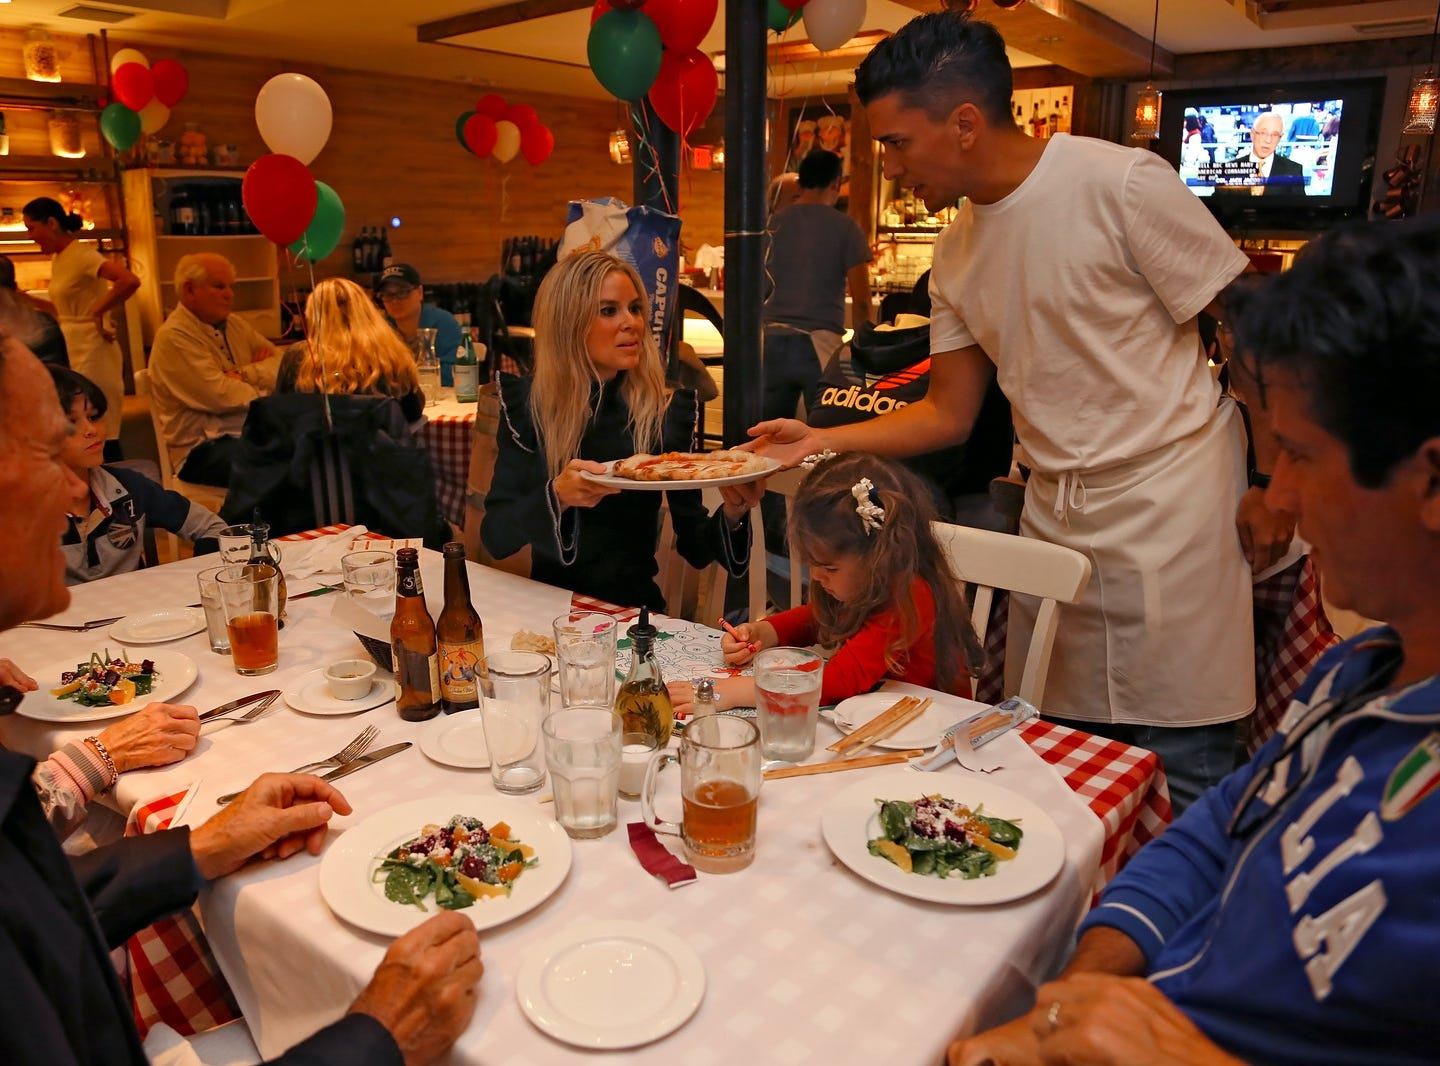 La Trattoria opened Friday, Dec. 21, 2018, on Fifth Avenue South in downtown Naples.